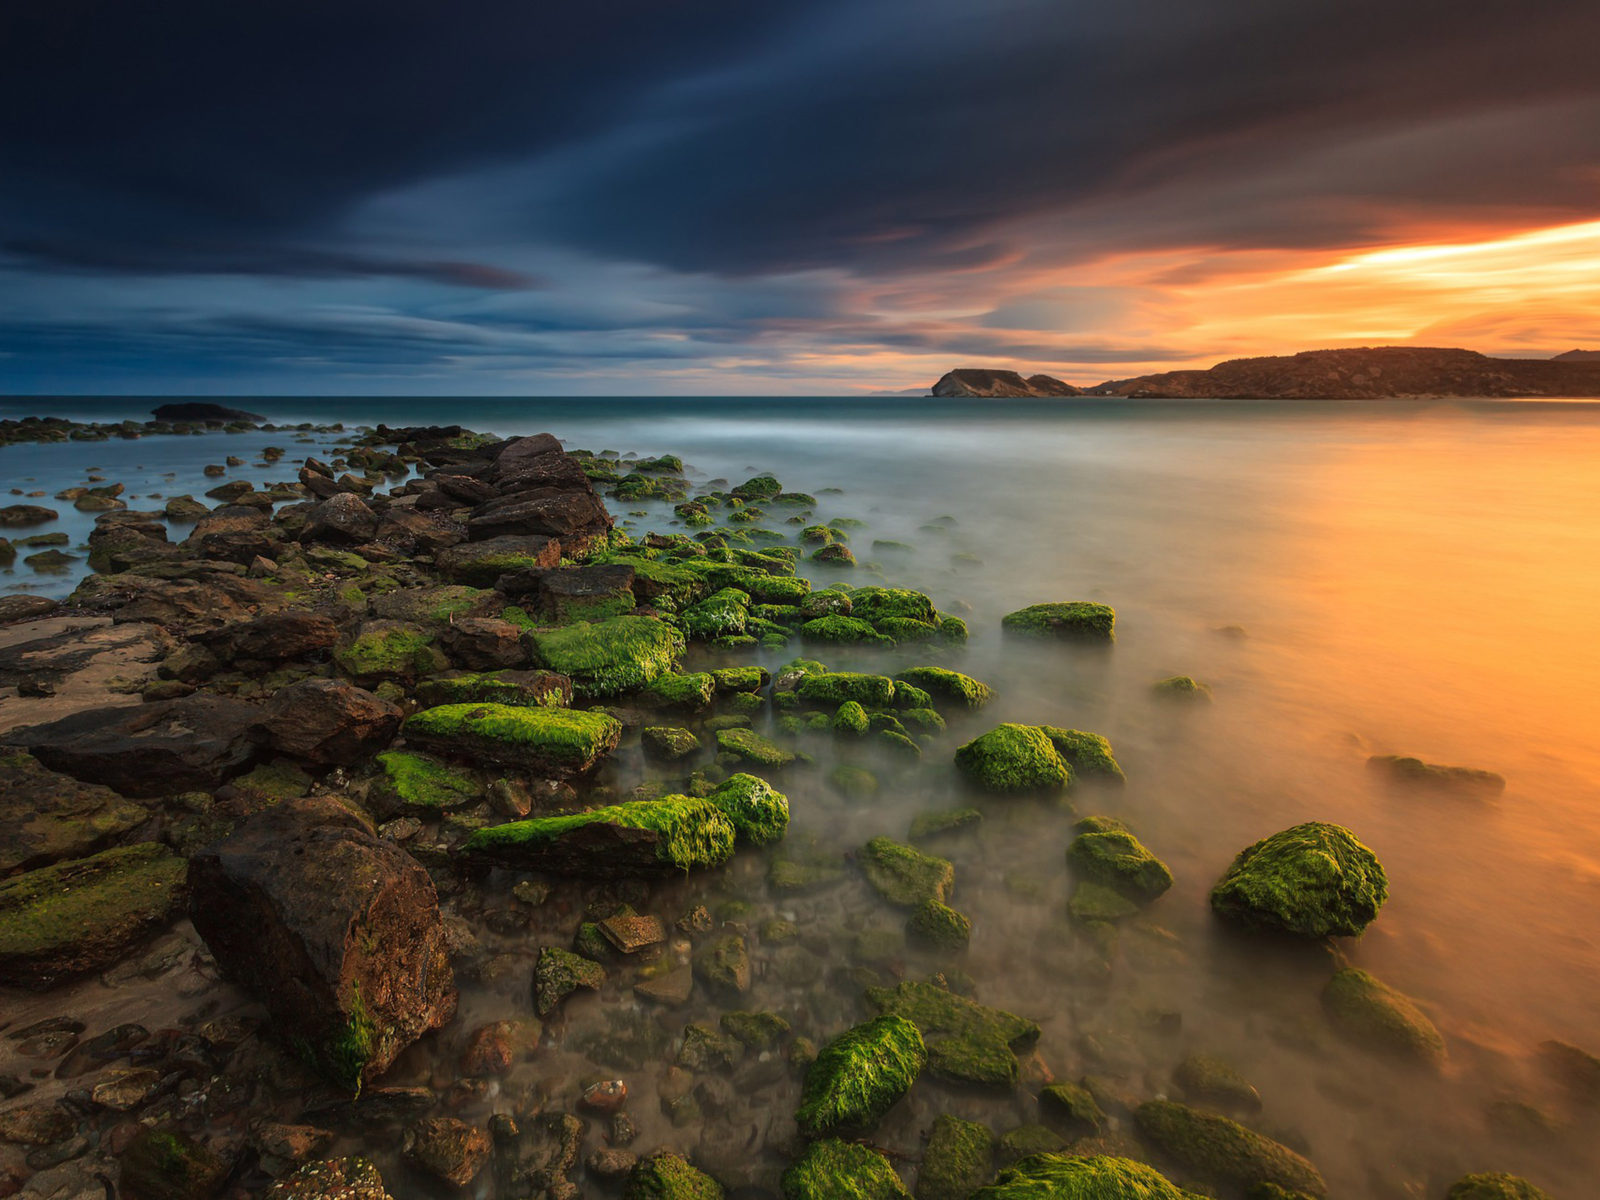 Animals Wallpapers For Mobile Free Download Sunset In Spain Coast Rocks With Green Moss Sea Reflection